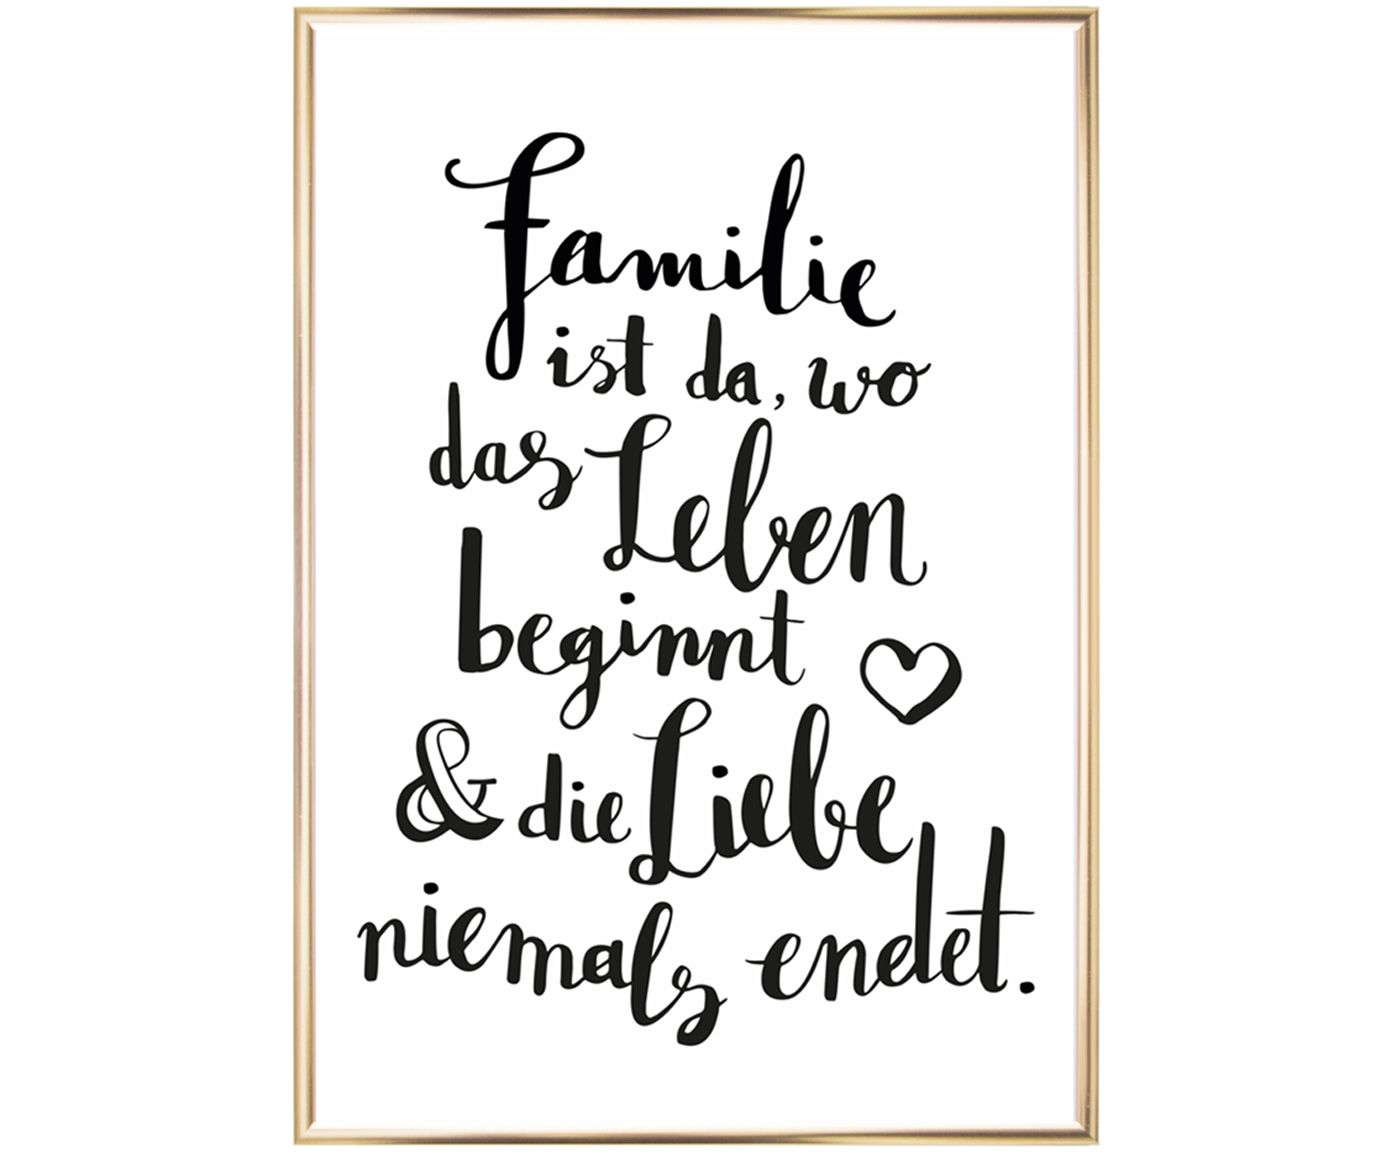 Tolle Wandbilder Gerahmter Digitaldruck Familie Nice Decoration Ideas